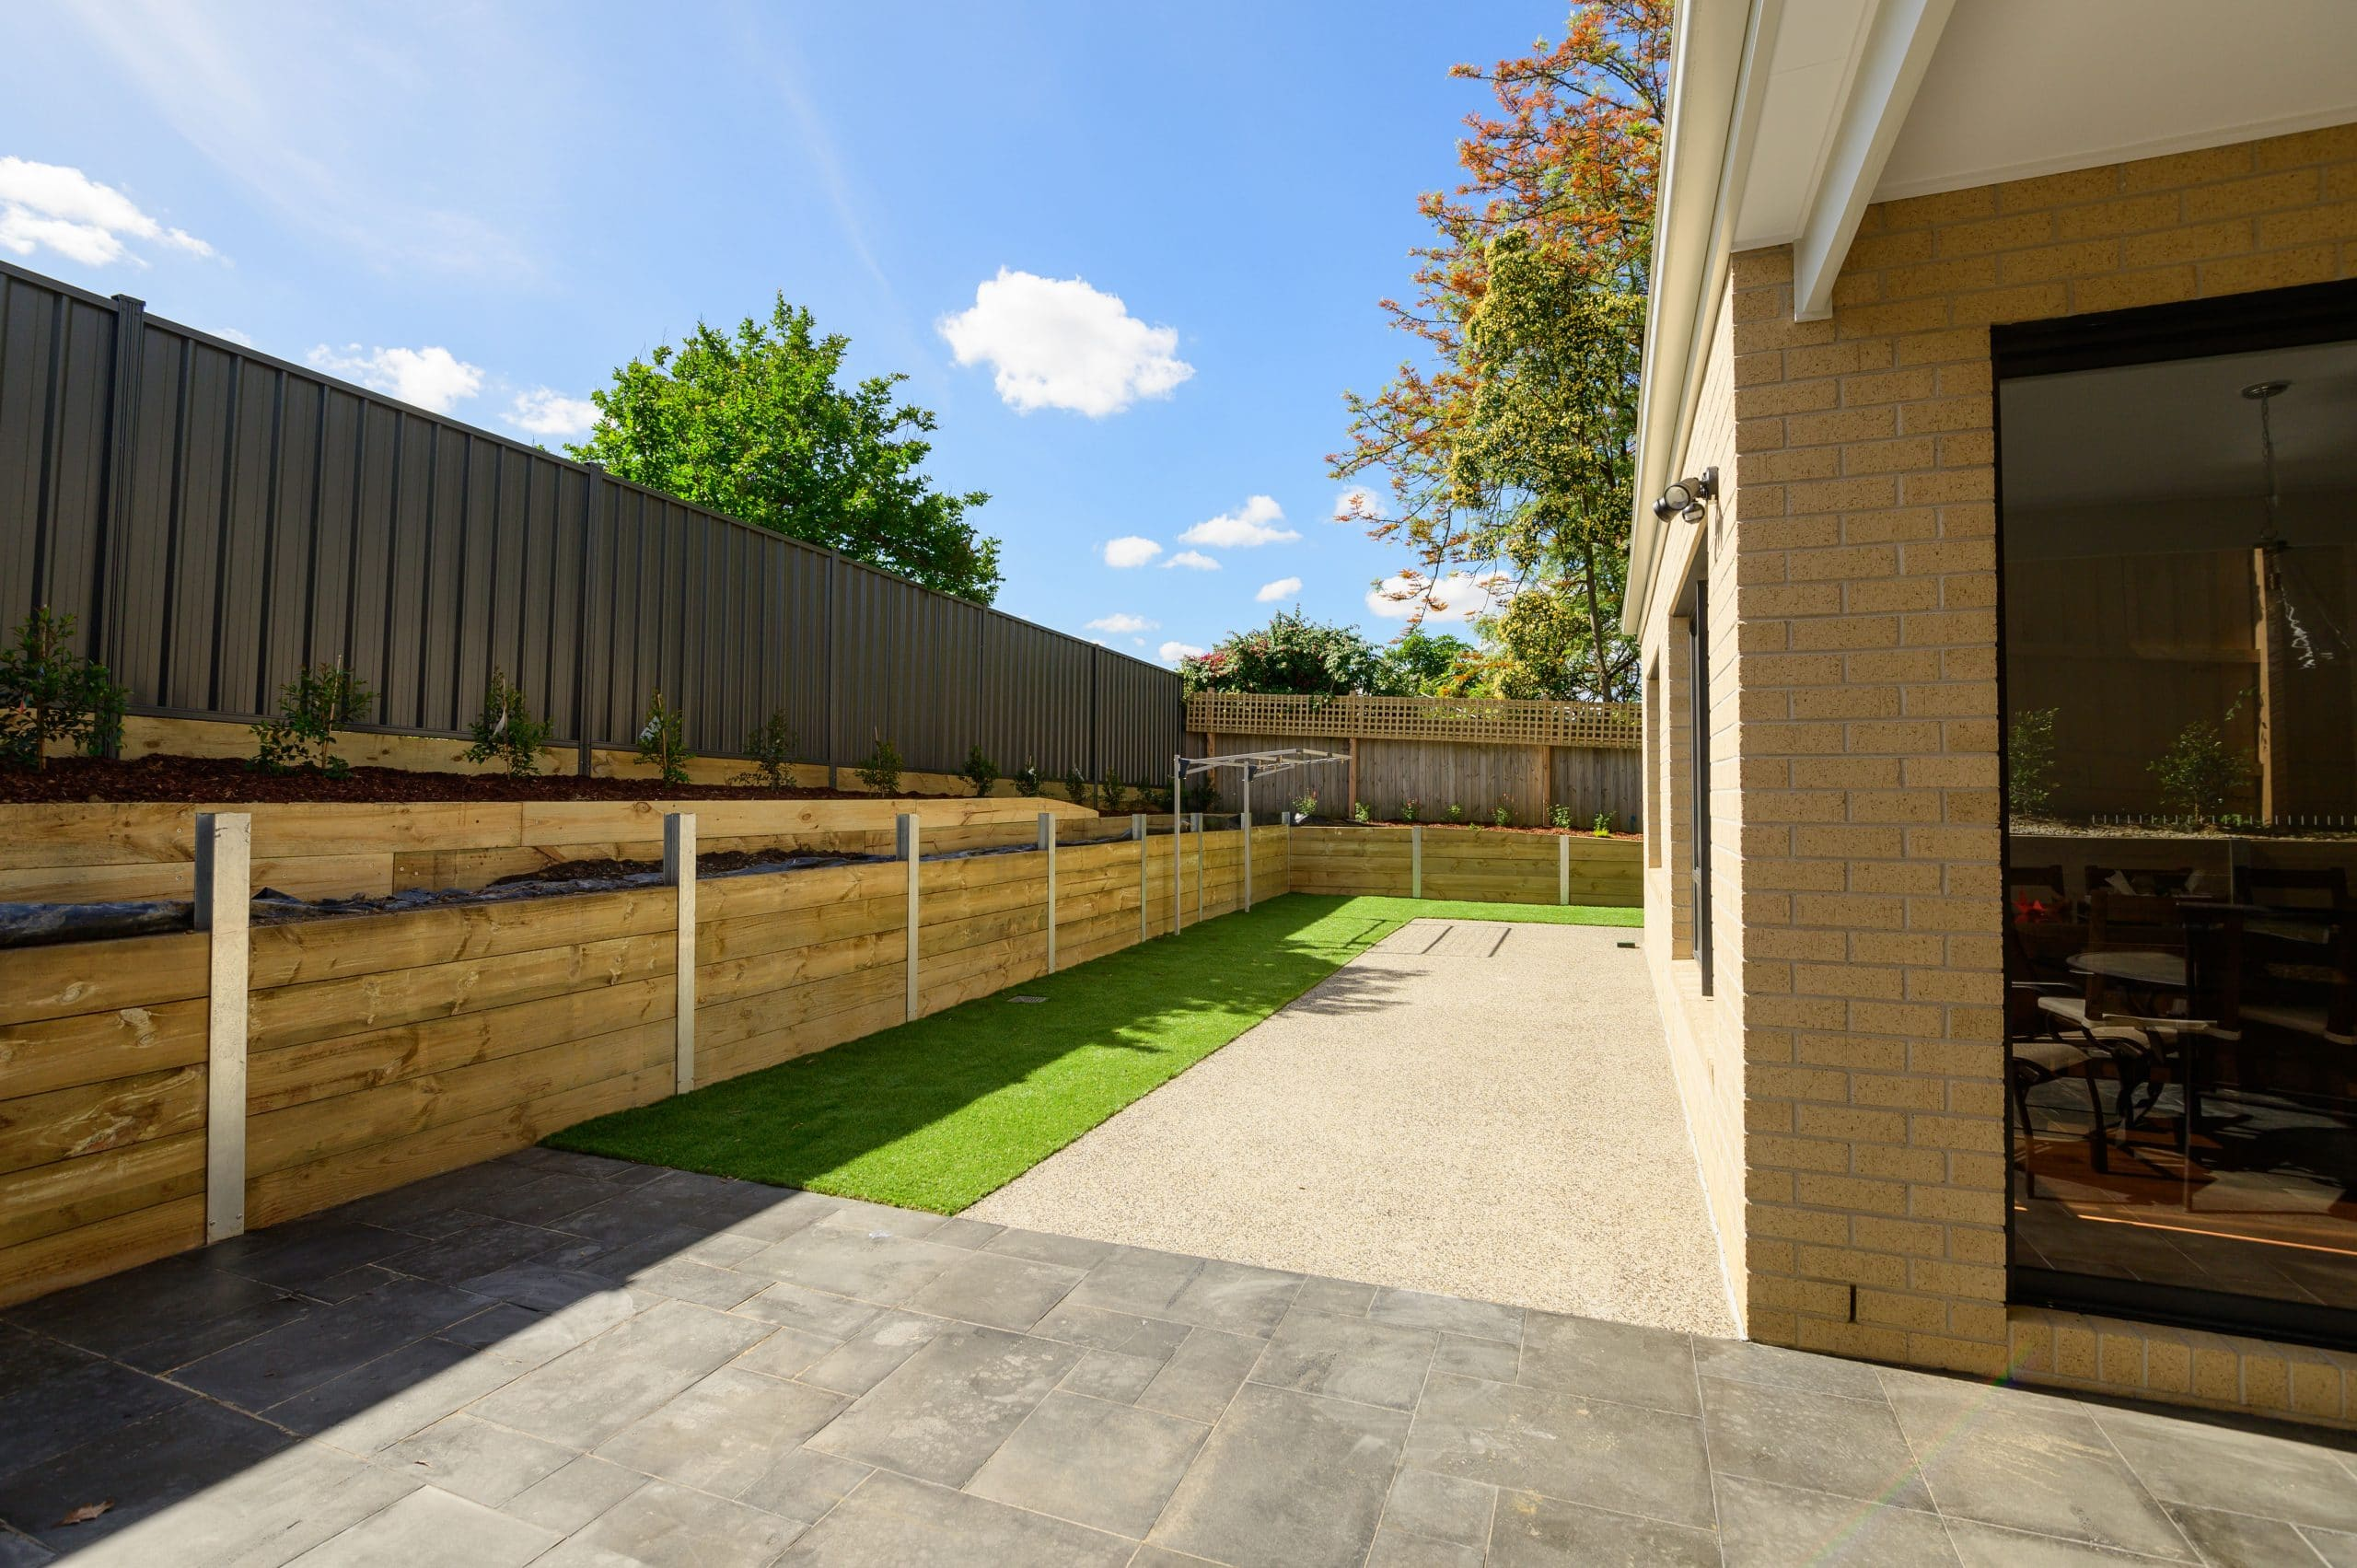 L258 - Doncaster East - back yard, retaining wall and grass path